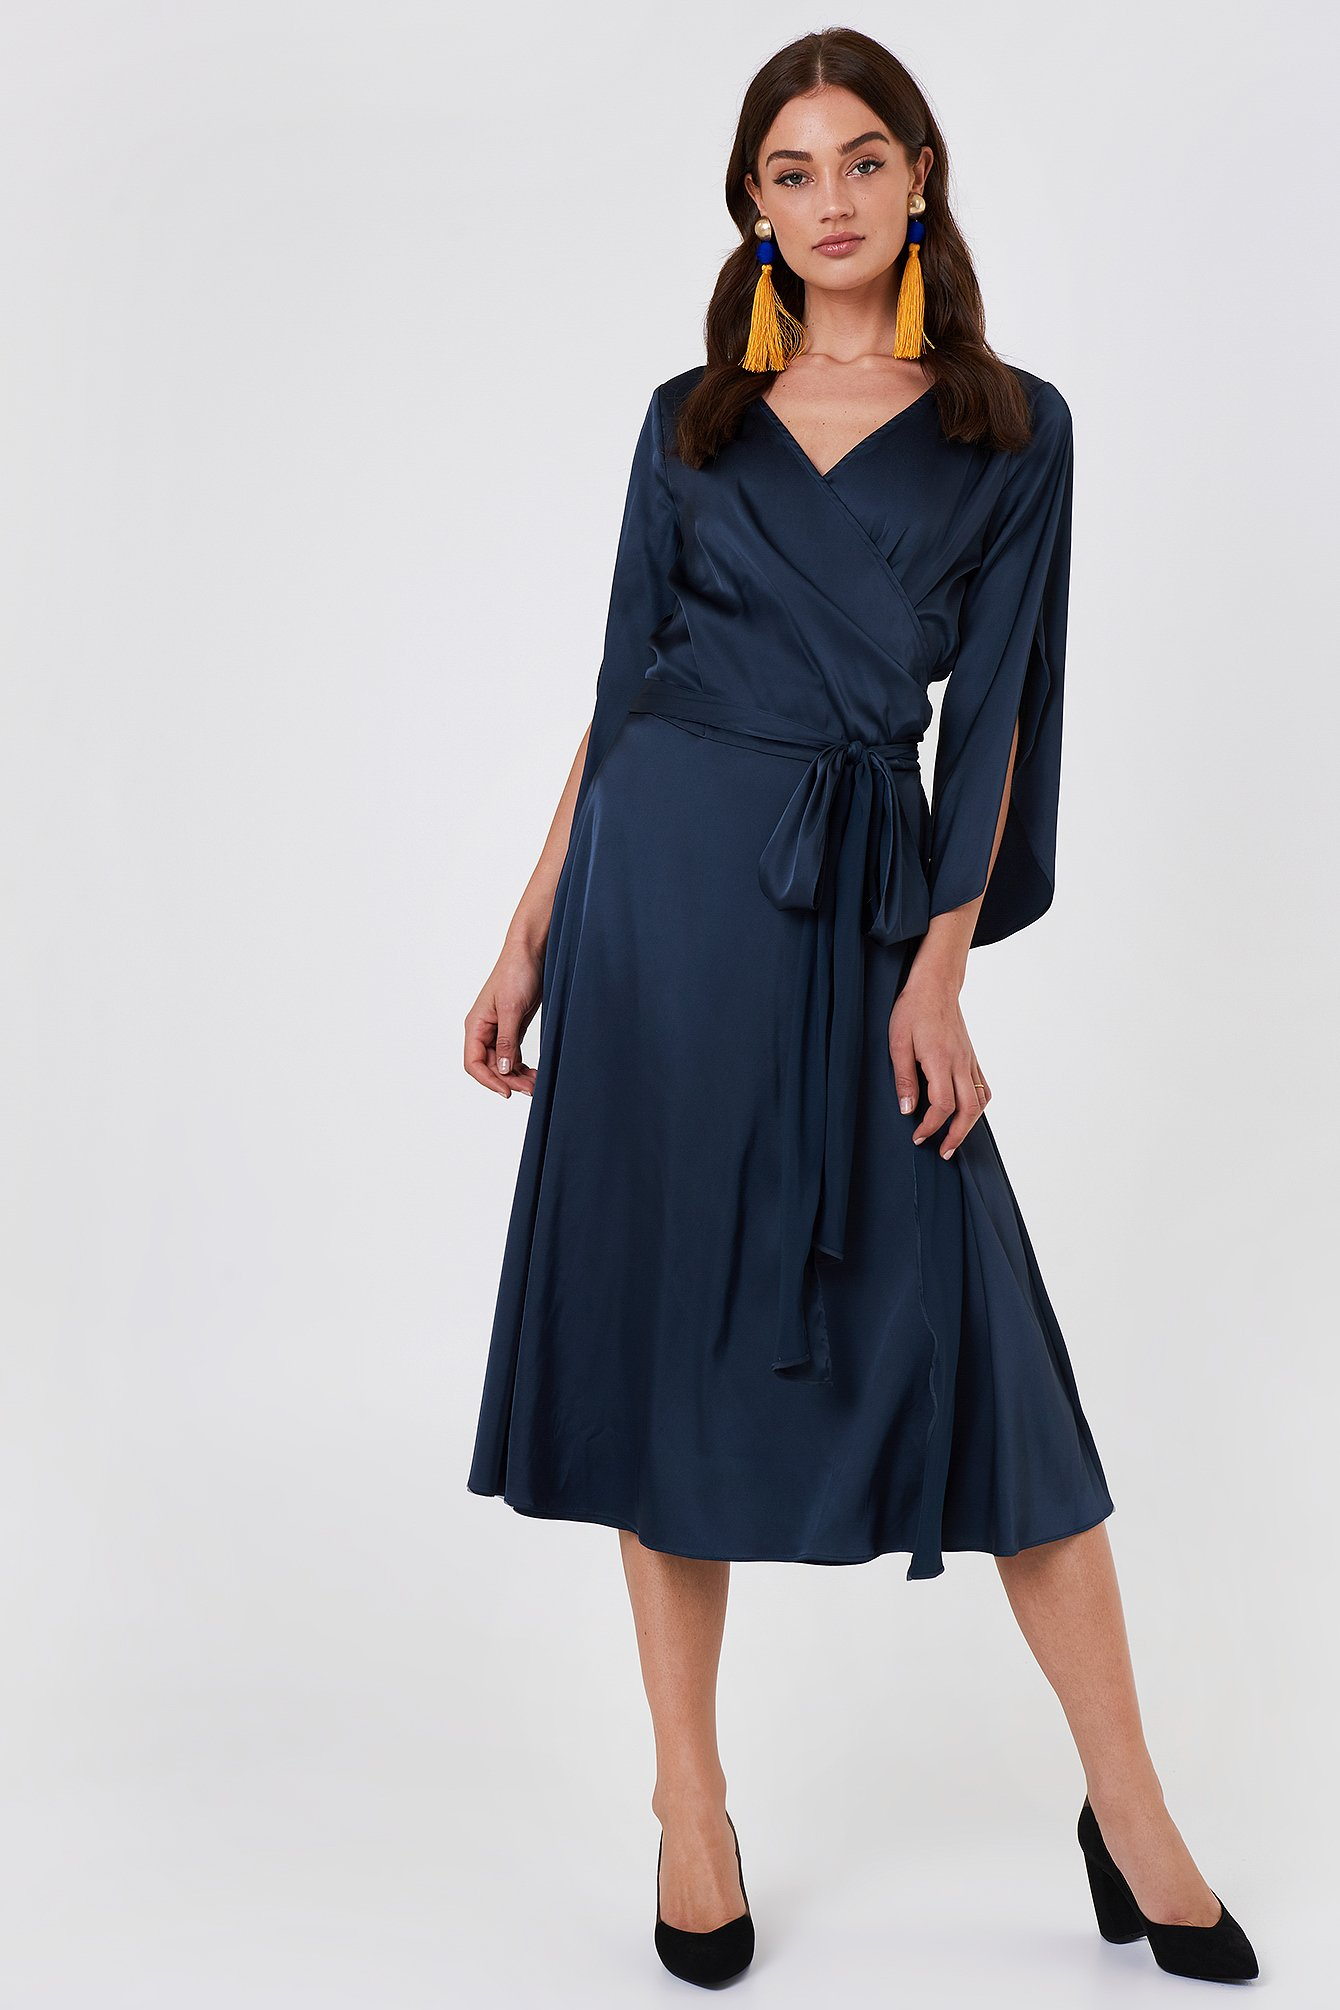 RUT & CIRCLE Fab Wrap Long Dress - Blue in Blue,Navy